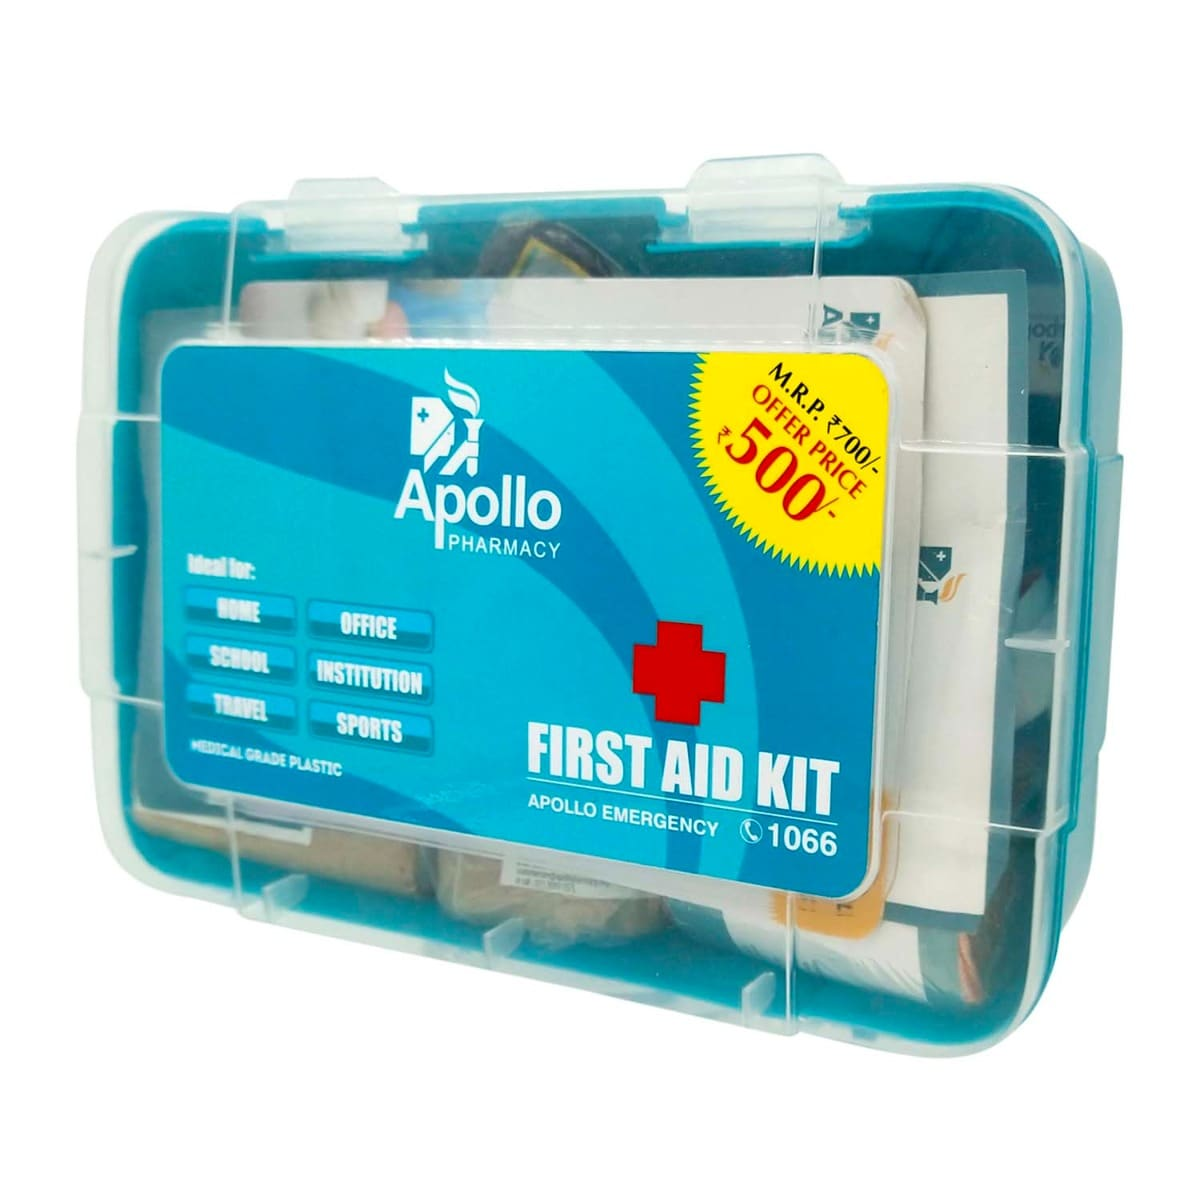 Apollo Pharmacy First Aid Kit, 1 Count, Pack of 1